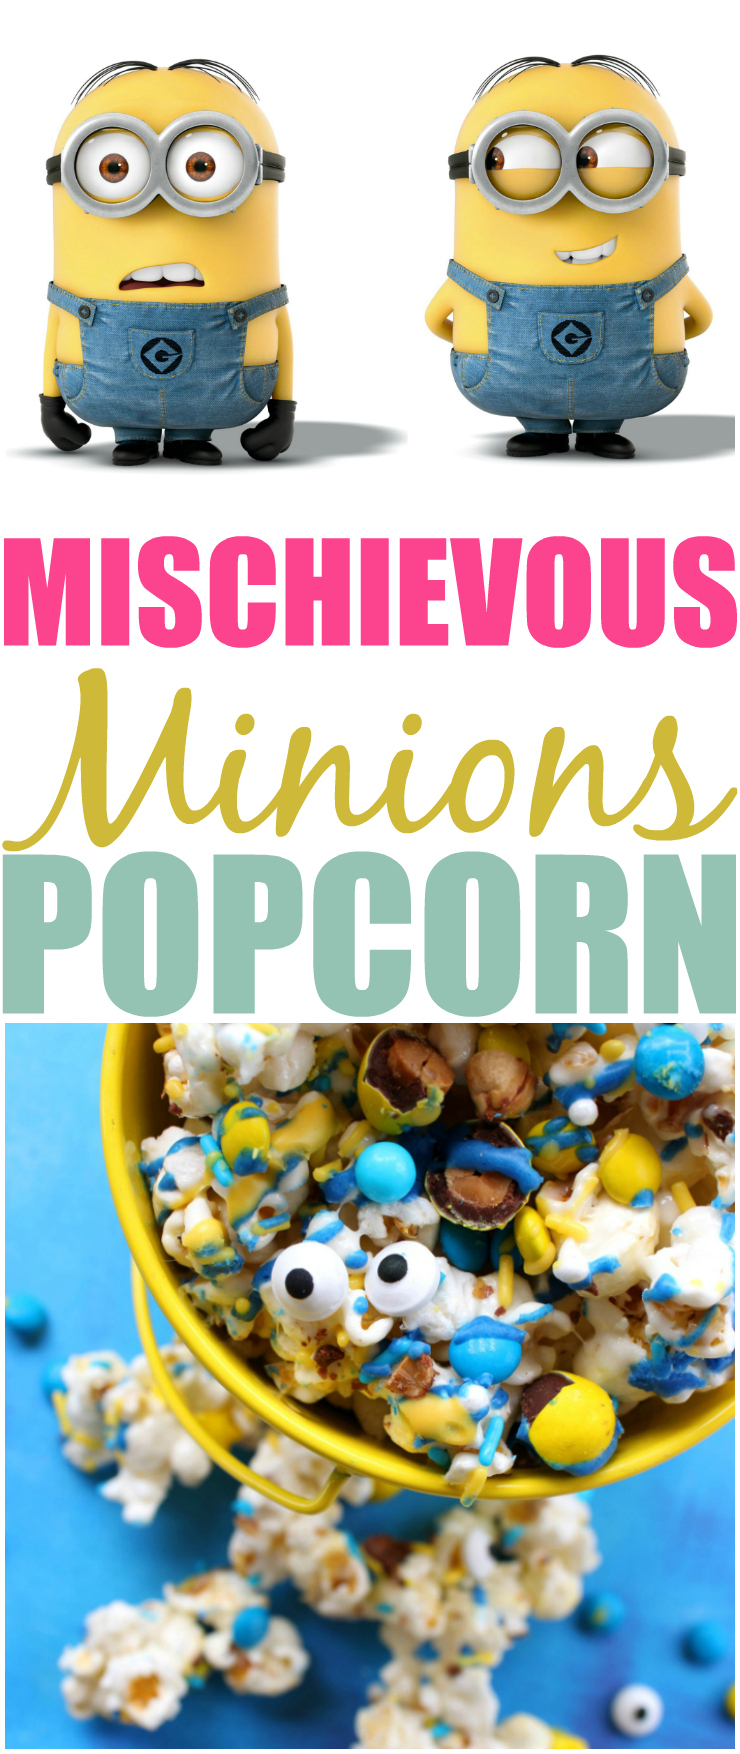 Plan a Despicable Me 3 family movie night and enjoy great laughs and a tasty treat with this Mischievous Minions Popcorn recipe.